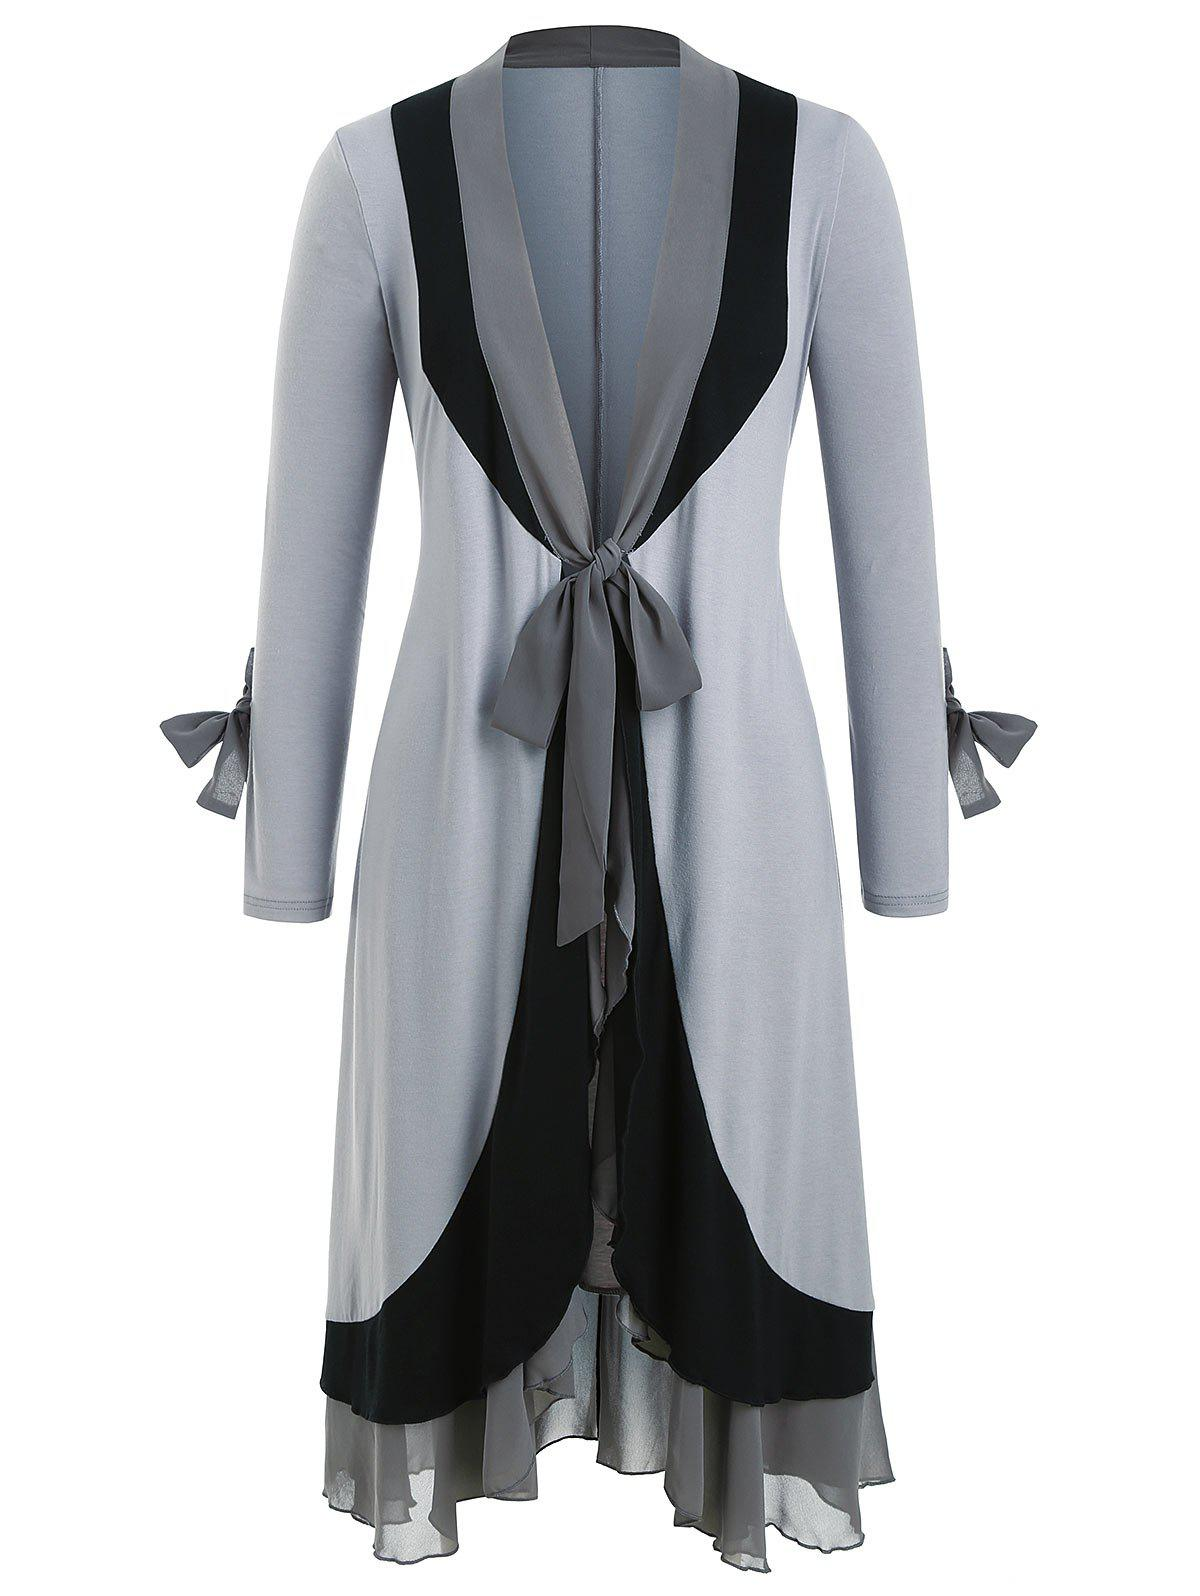 Knotted Chiffon Panel Flounces Plus Size Duster Coat - GRAY 3X